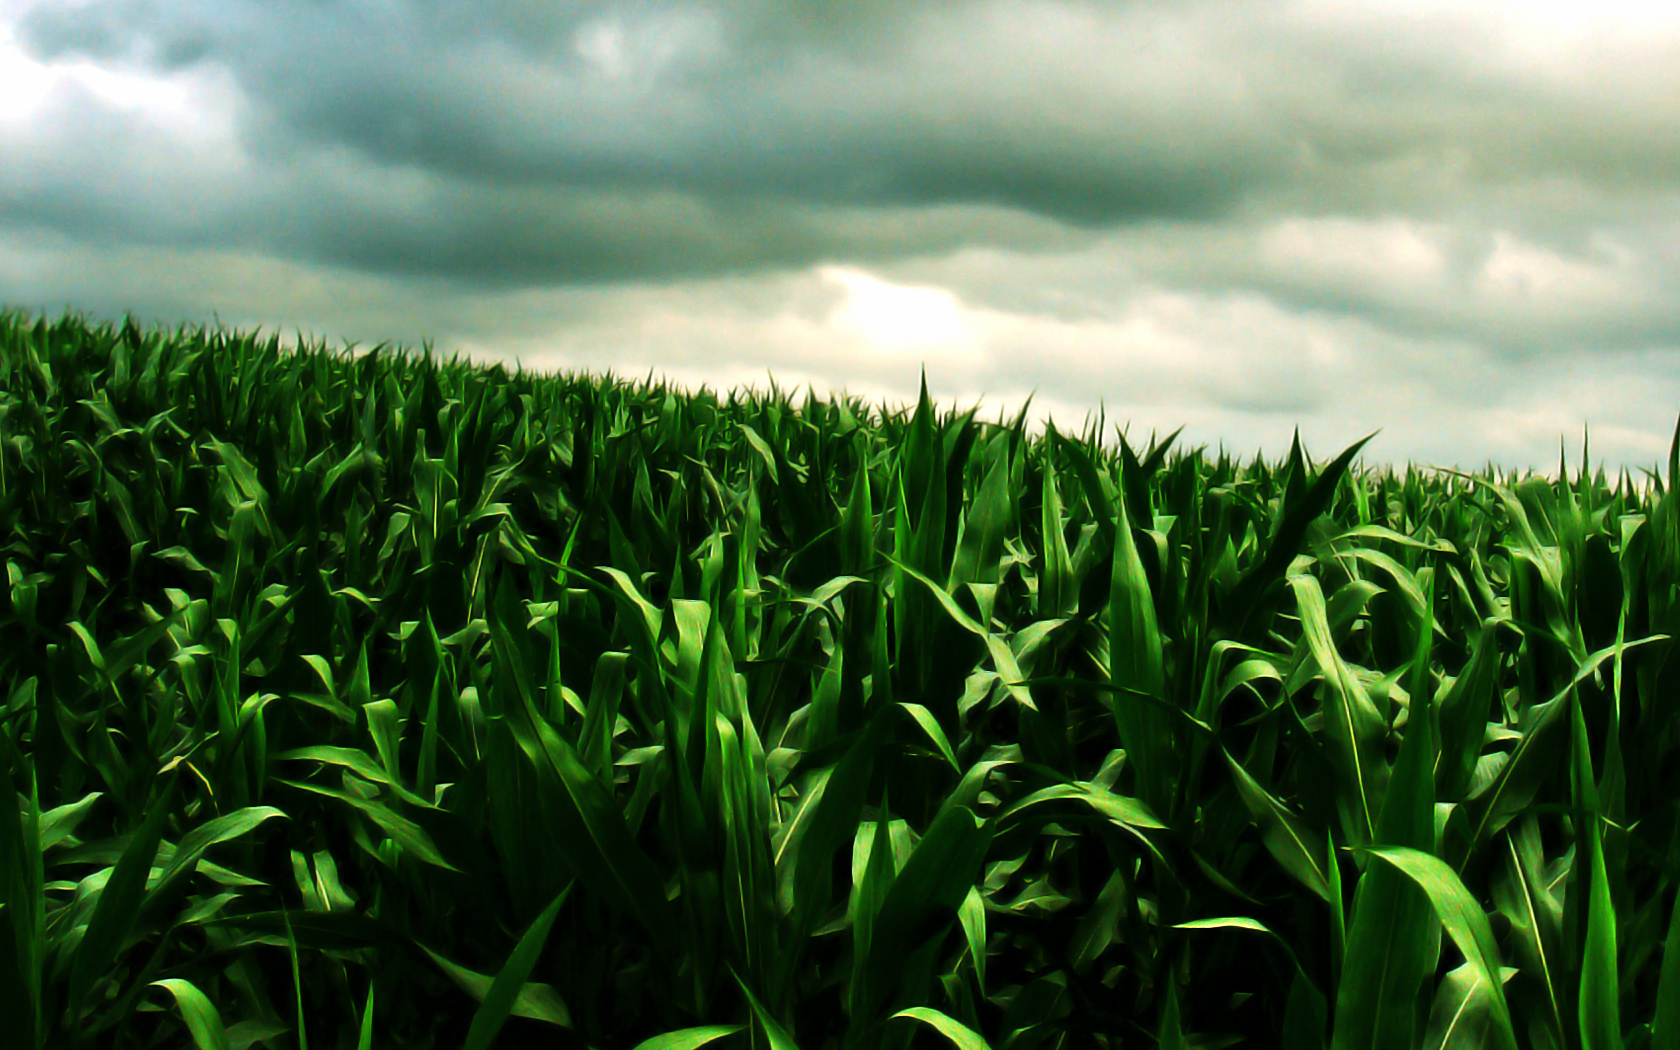 corn field download - photo #25